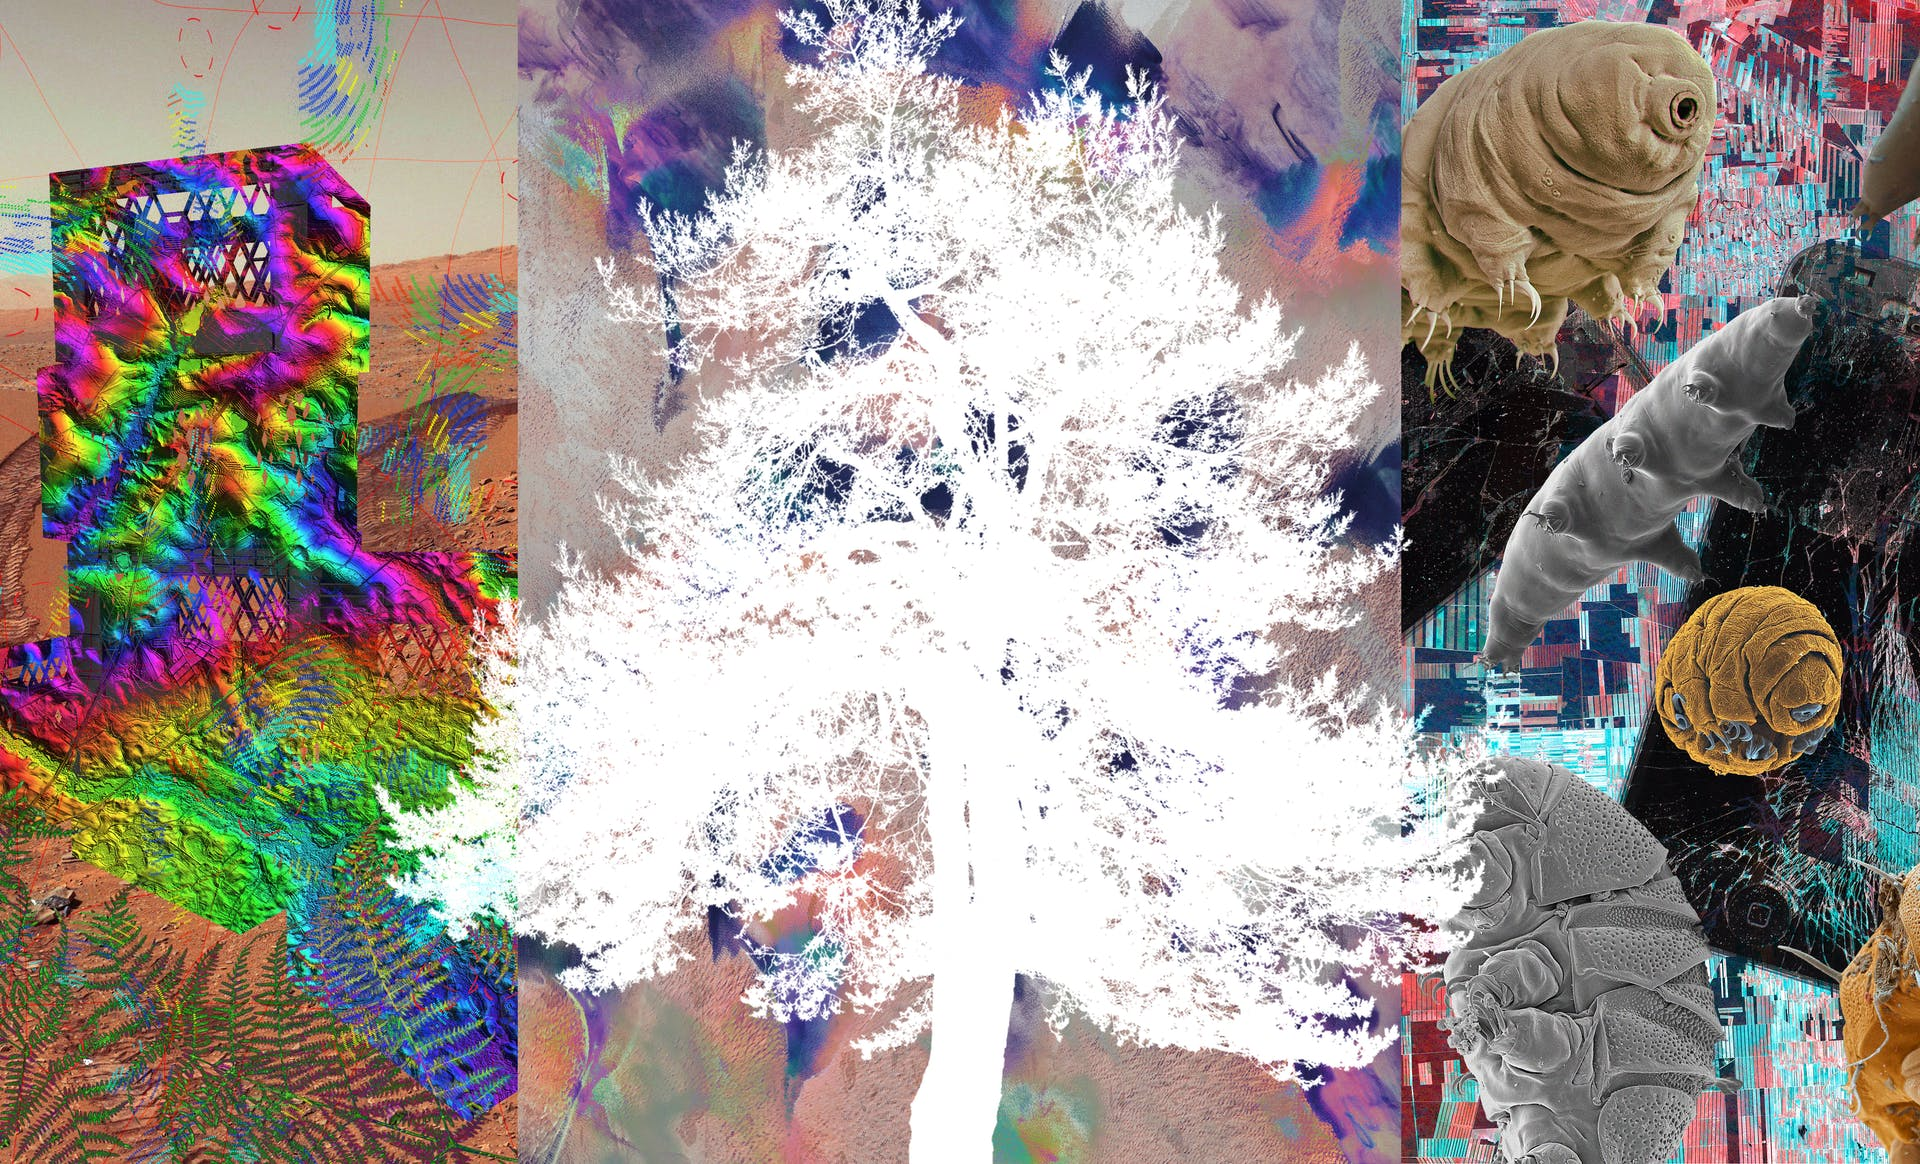 Colorful collage incorporating silhouette of tree, tardigrades, Mars landscape, broken telephone, milk crates